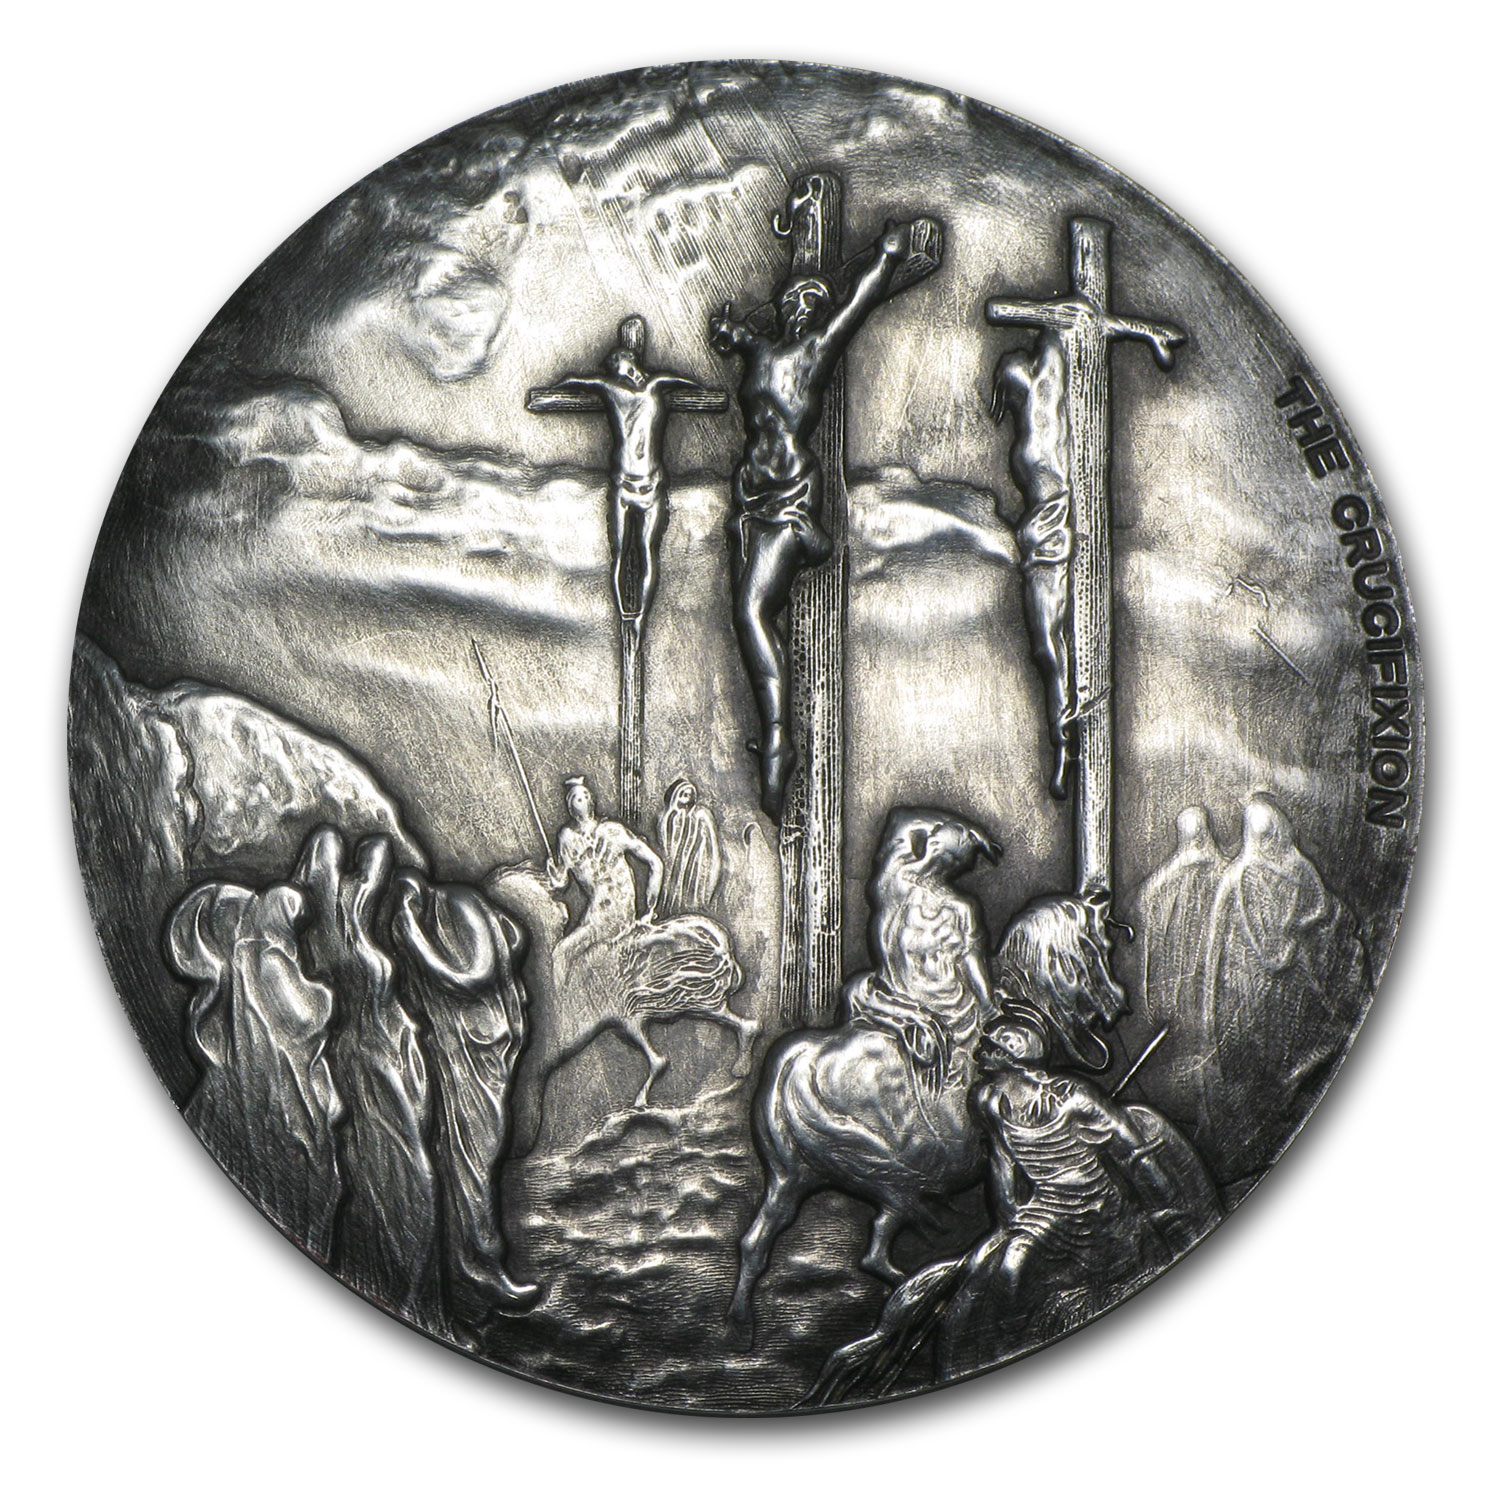 2015 2 oz Silver Coin - Biblical Series (Crucifixion)